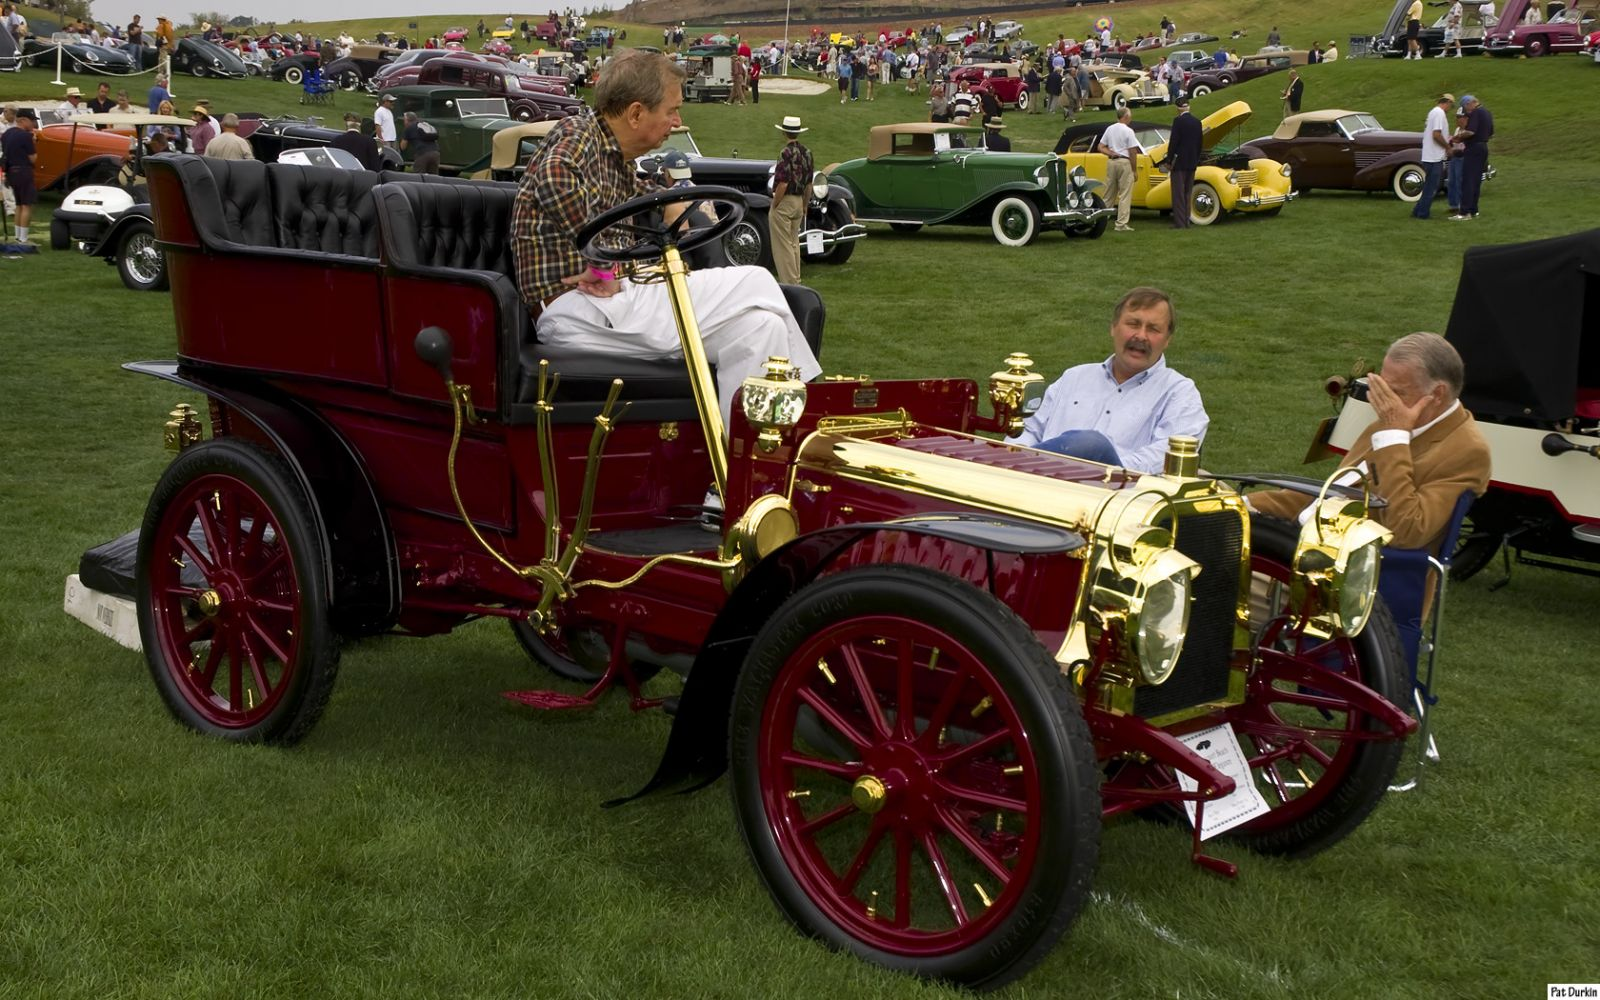 1903 Clement rear entry tonneau - dark red - fvr